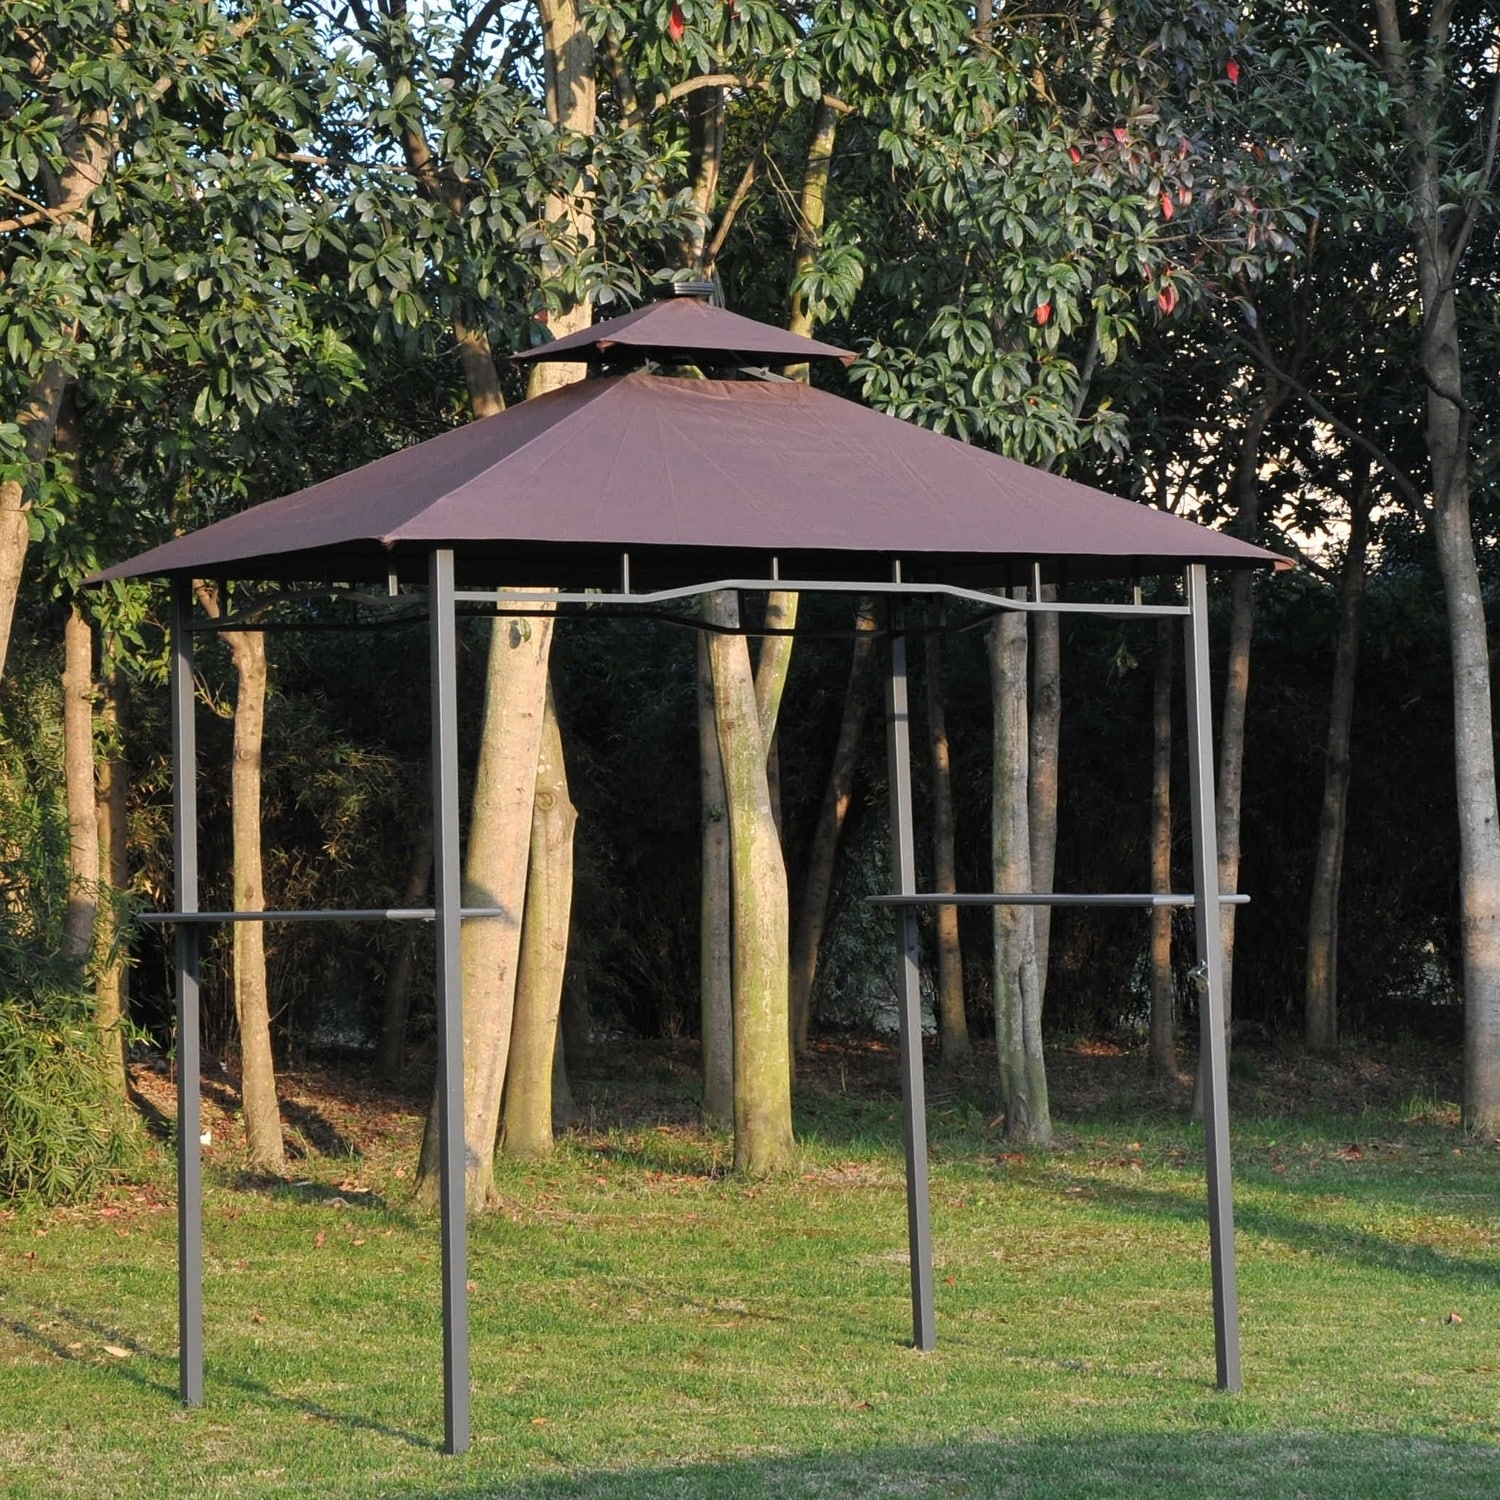 gazebos wooden gazebo forest garden internet gardener product bbq awning shelter